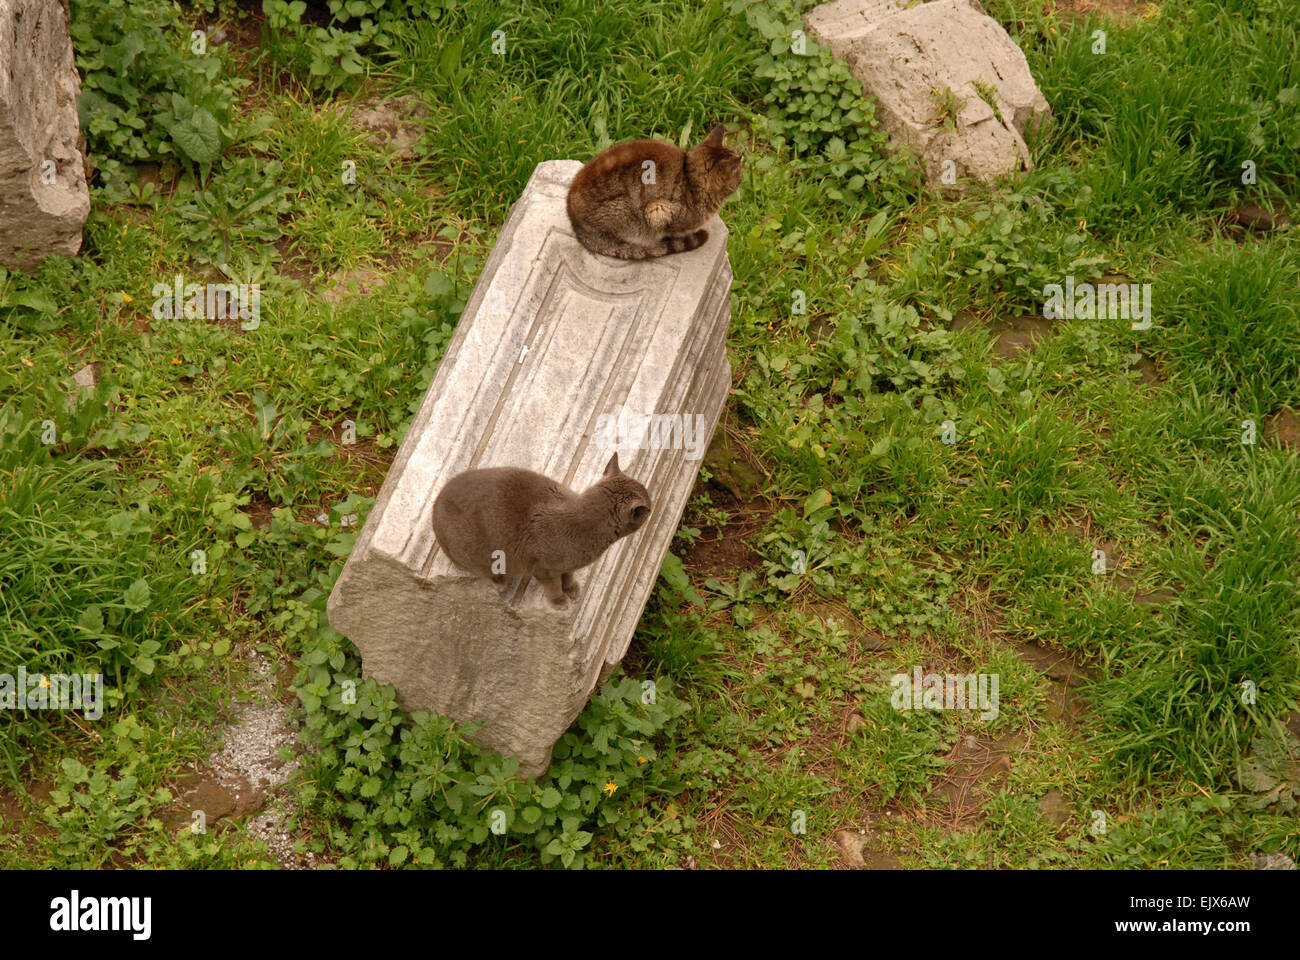 Area Sacra, Rome, with two feral cats sitting on a section of fallen column. - Stock Image